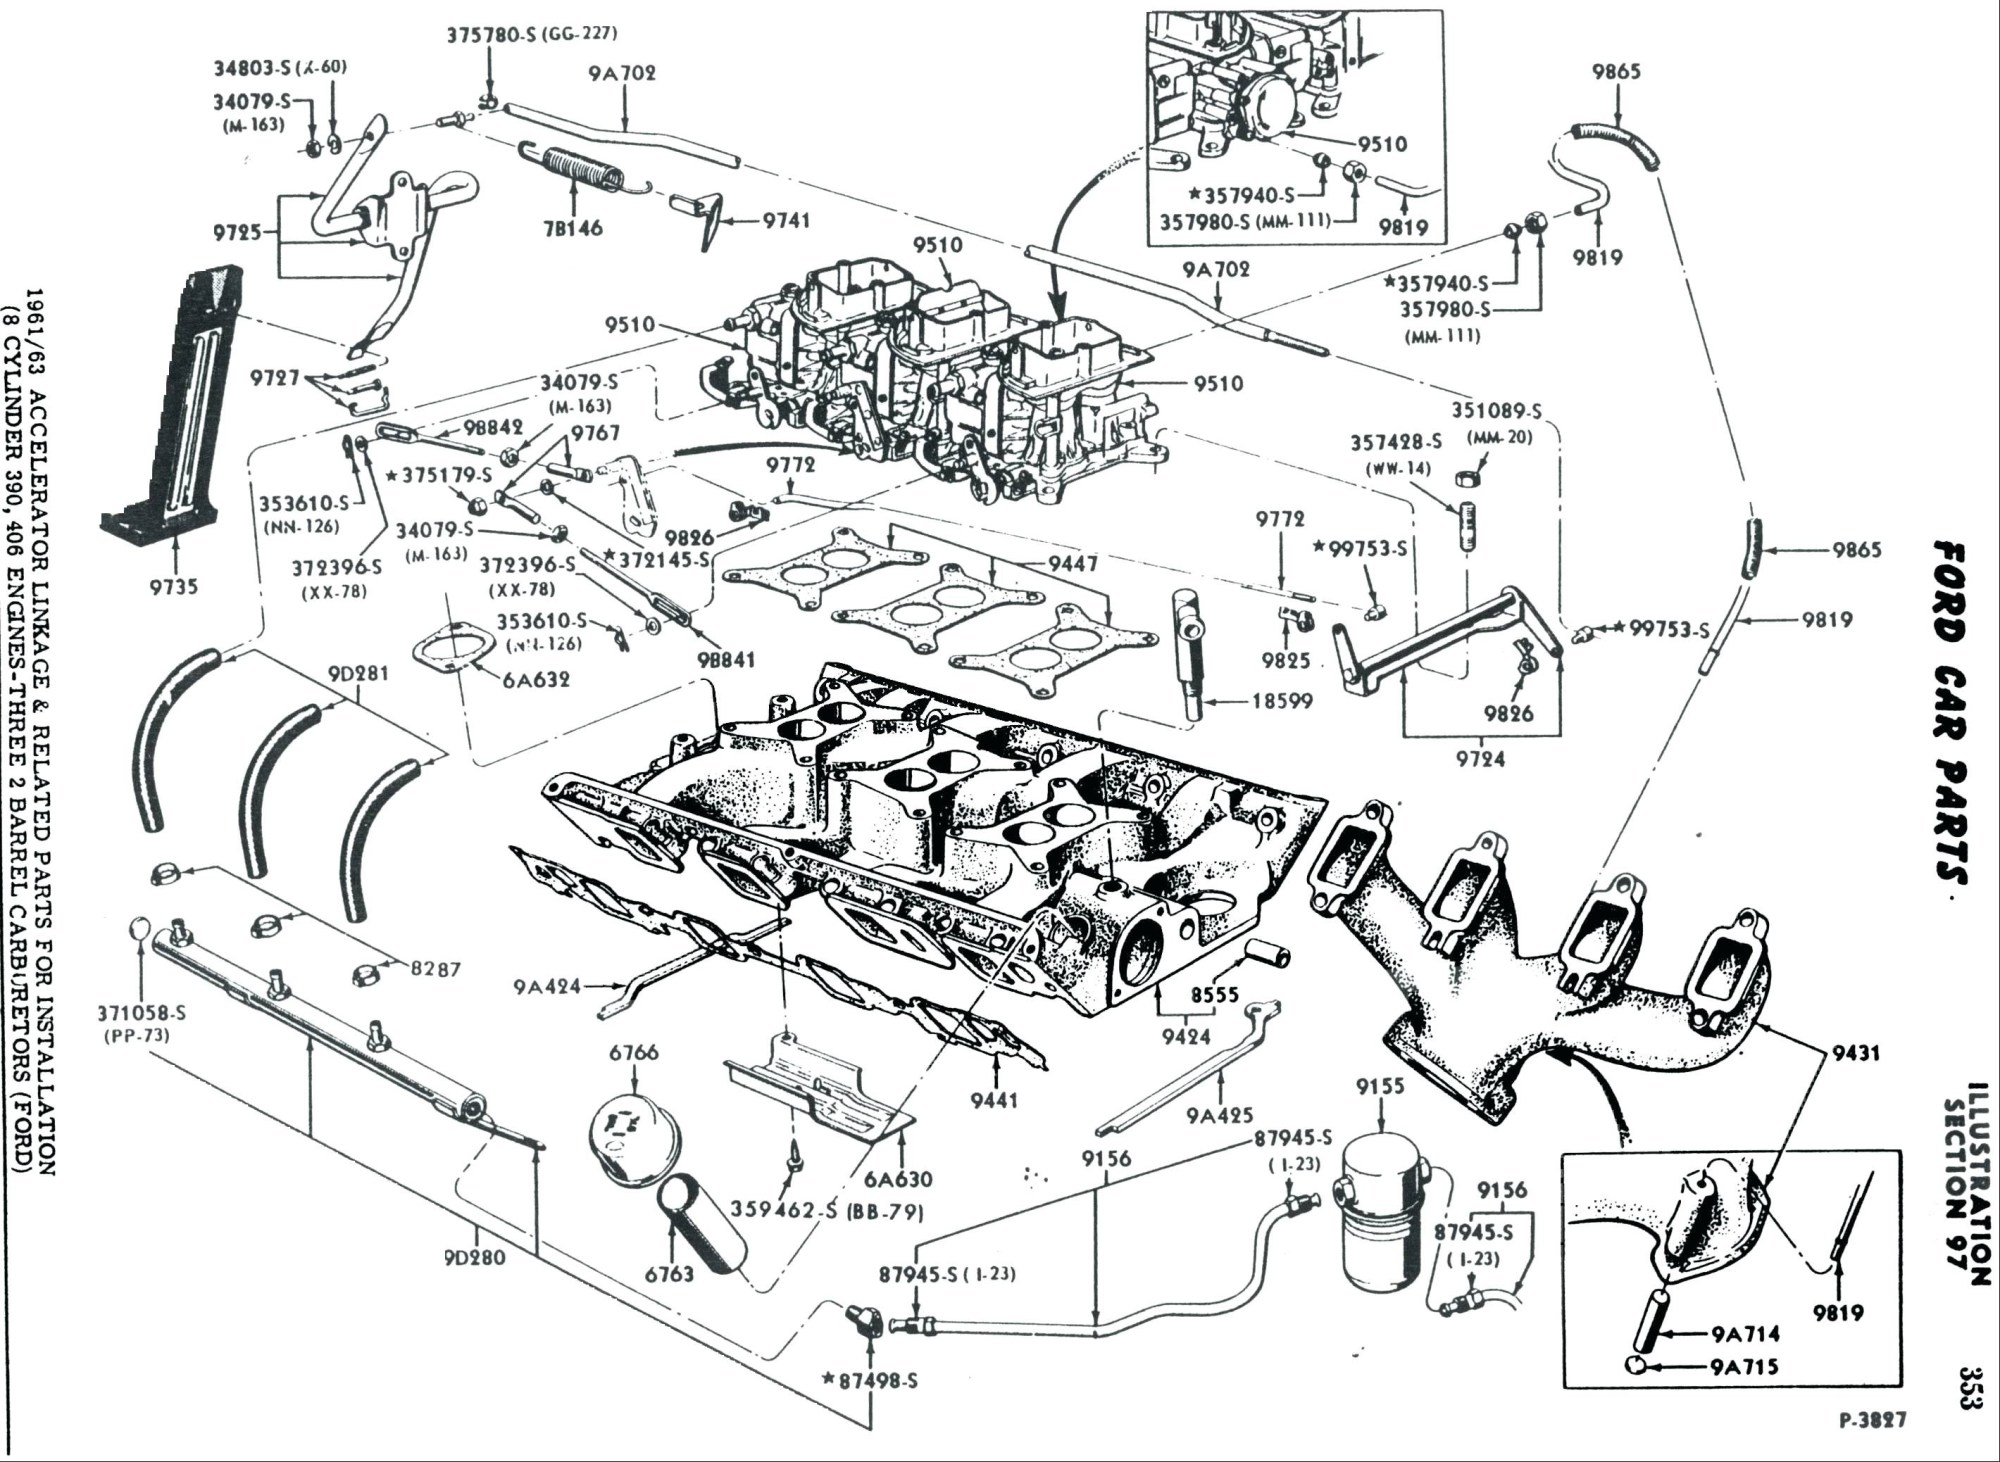 hight resolution of camry engine diagram 2009 toyota camry engine diagram nickfayosub of camry engine diagram electrical wiring